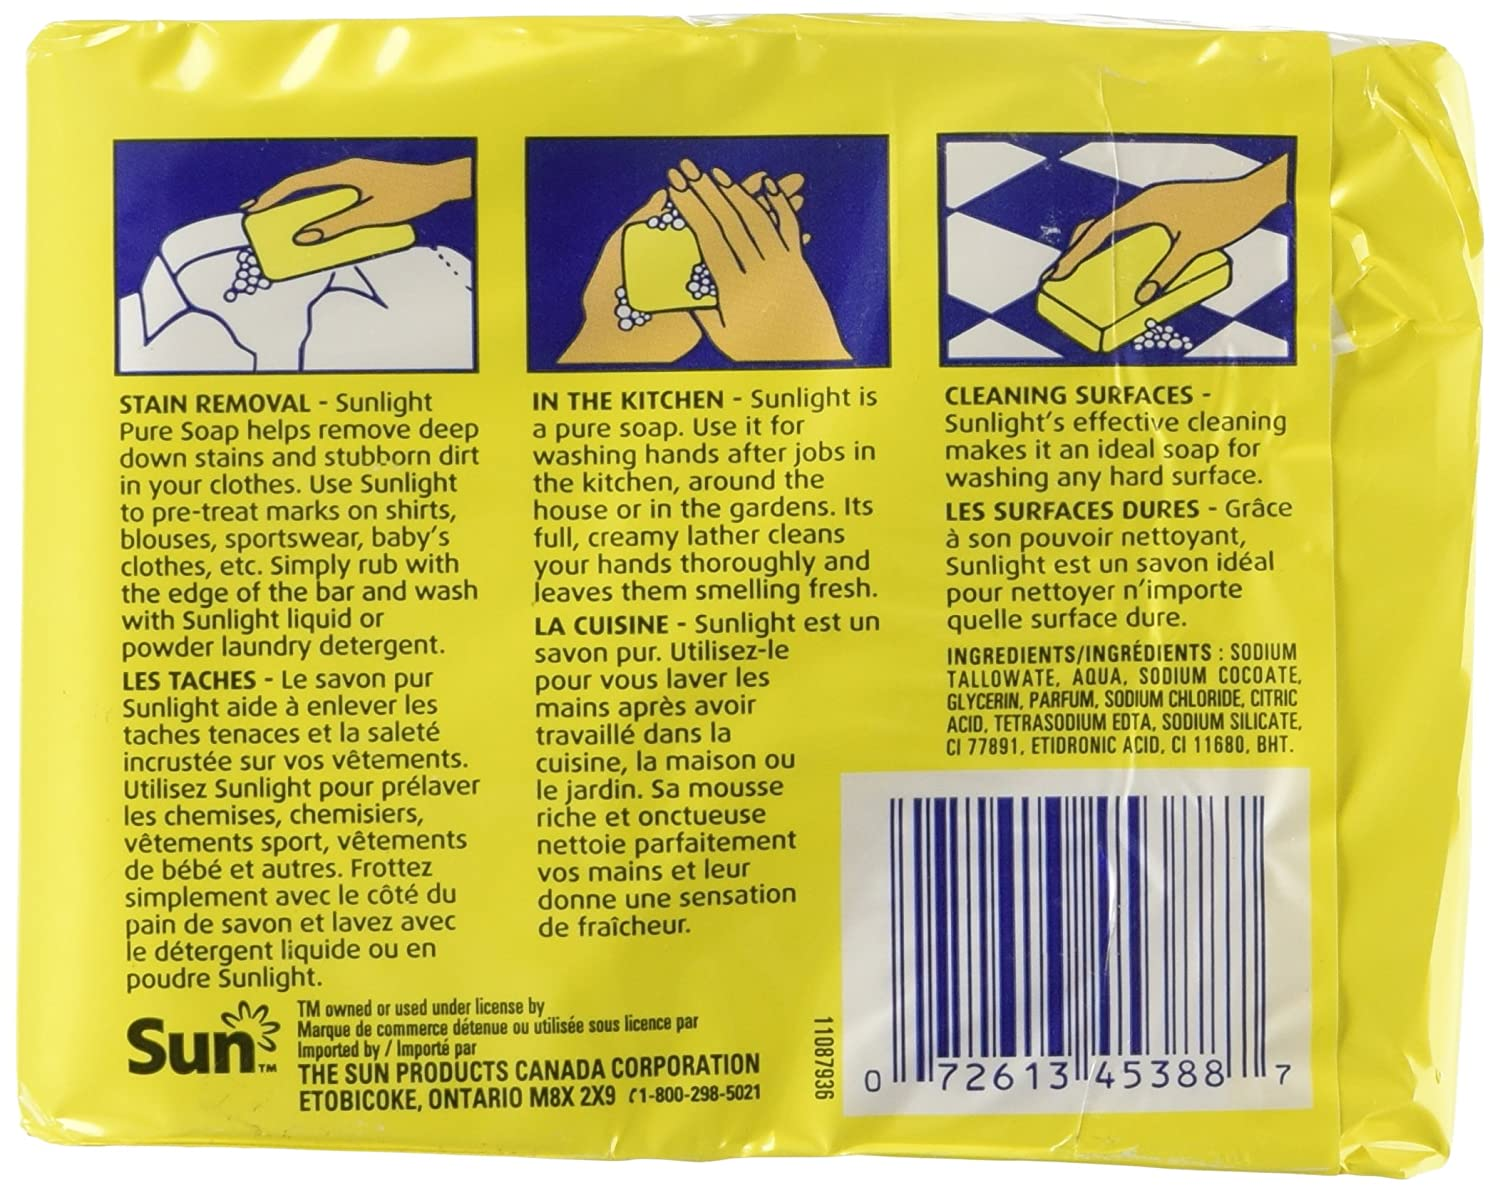 Amazon.com: Sunlight Lemon Laundry Detergent Bar, 2 x 130 Gram: Home & Kitchen